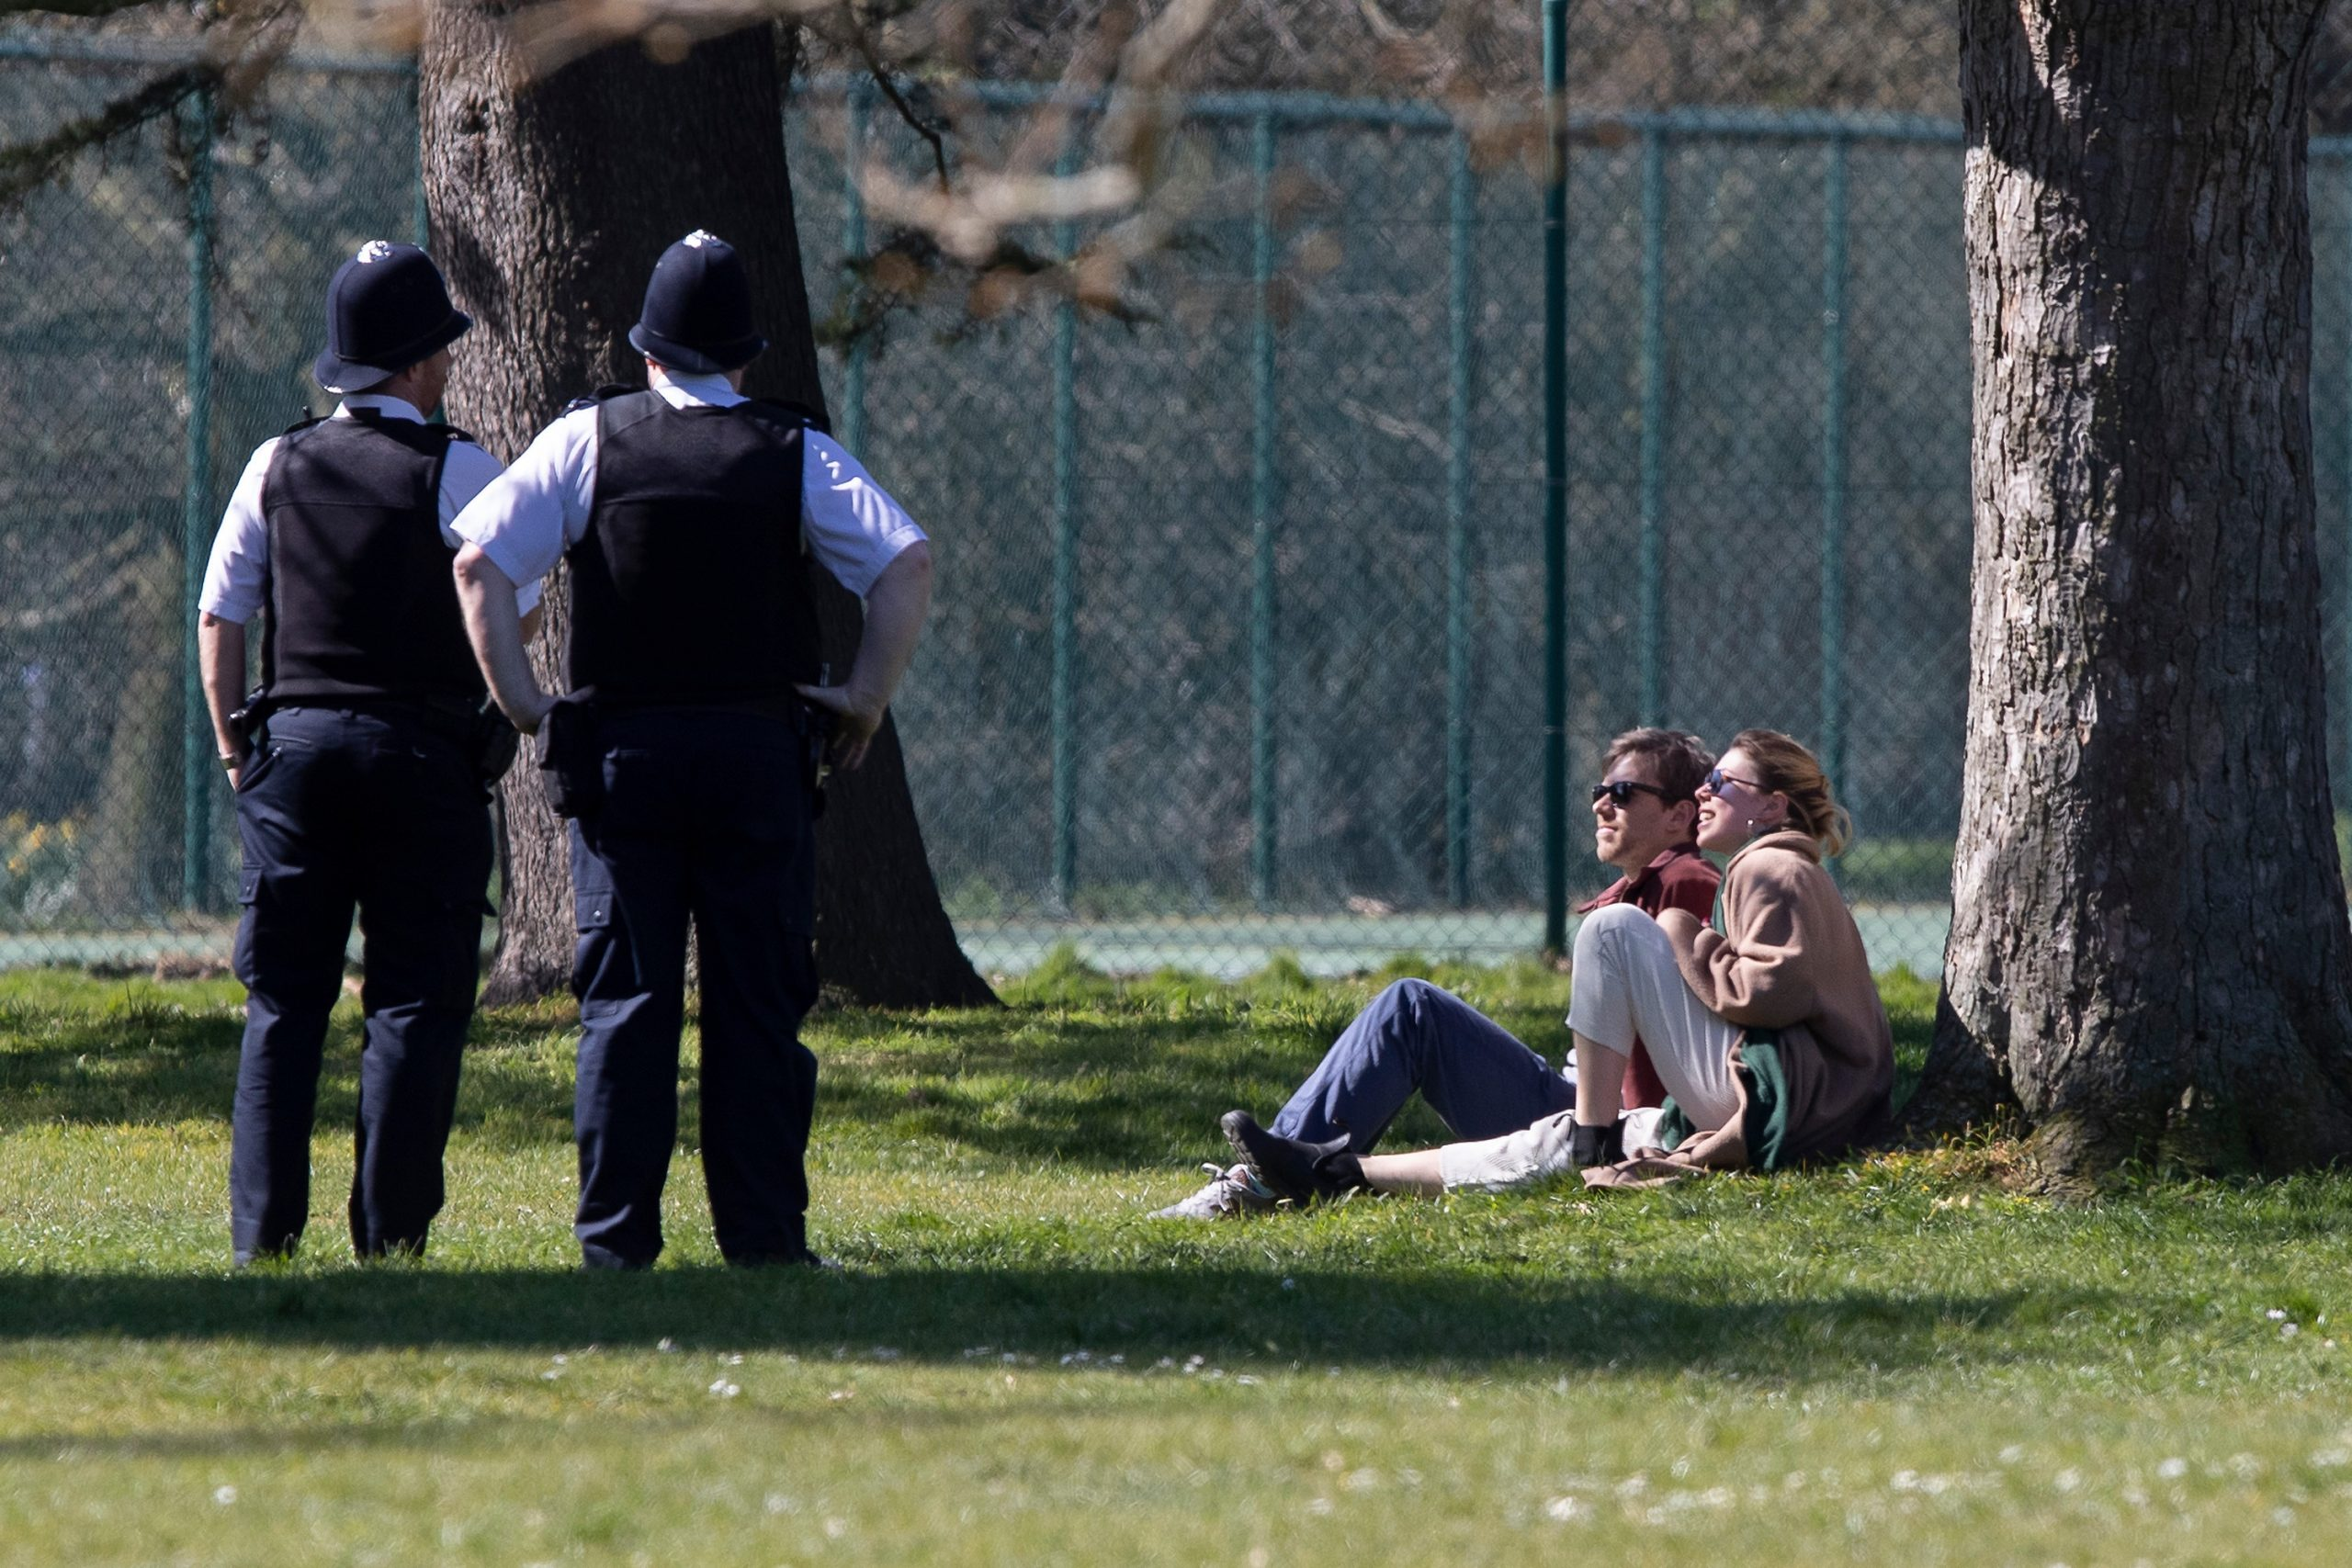 """Europeans don't sit at home so much that the authorities are advised """"not to fine people sunbathing in parks"""""""